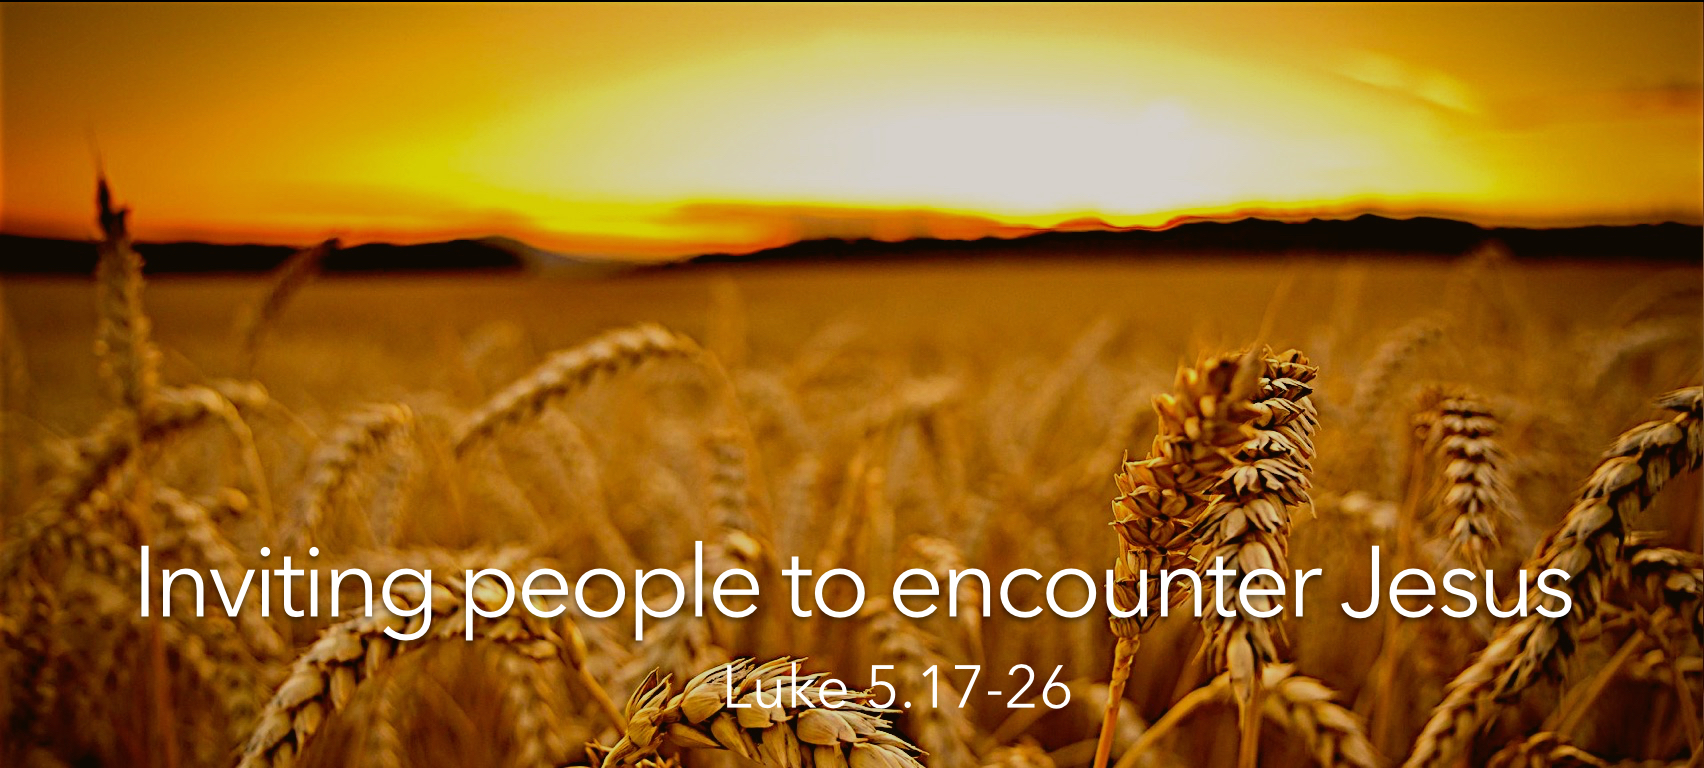 Inviting People to Encounter Jesus.001.jpg